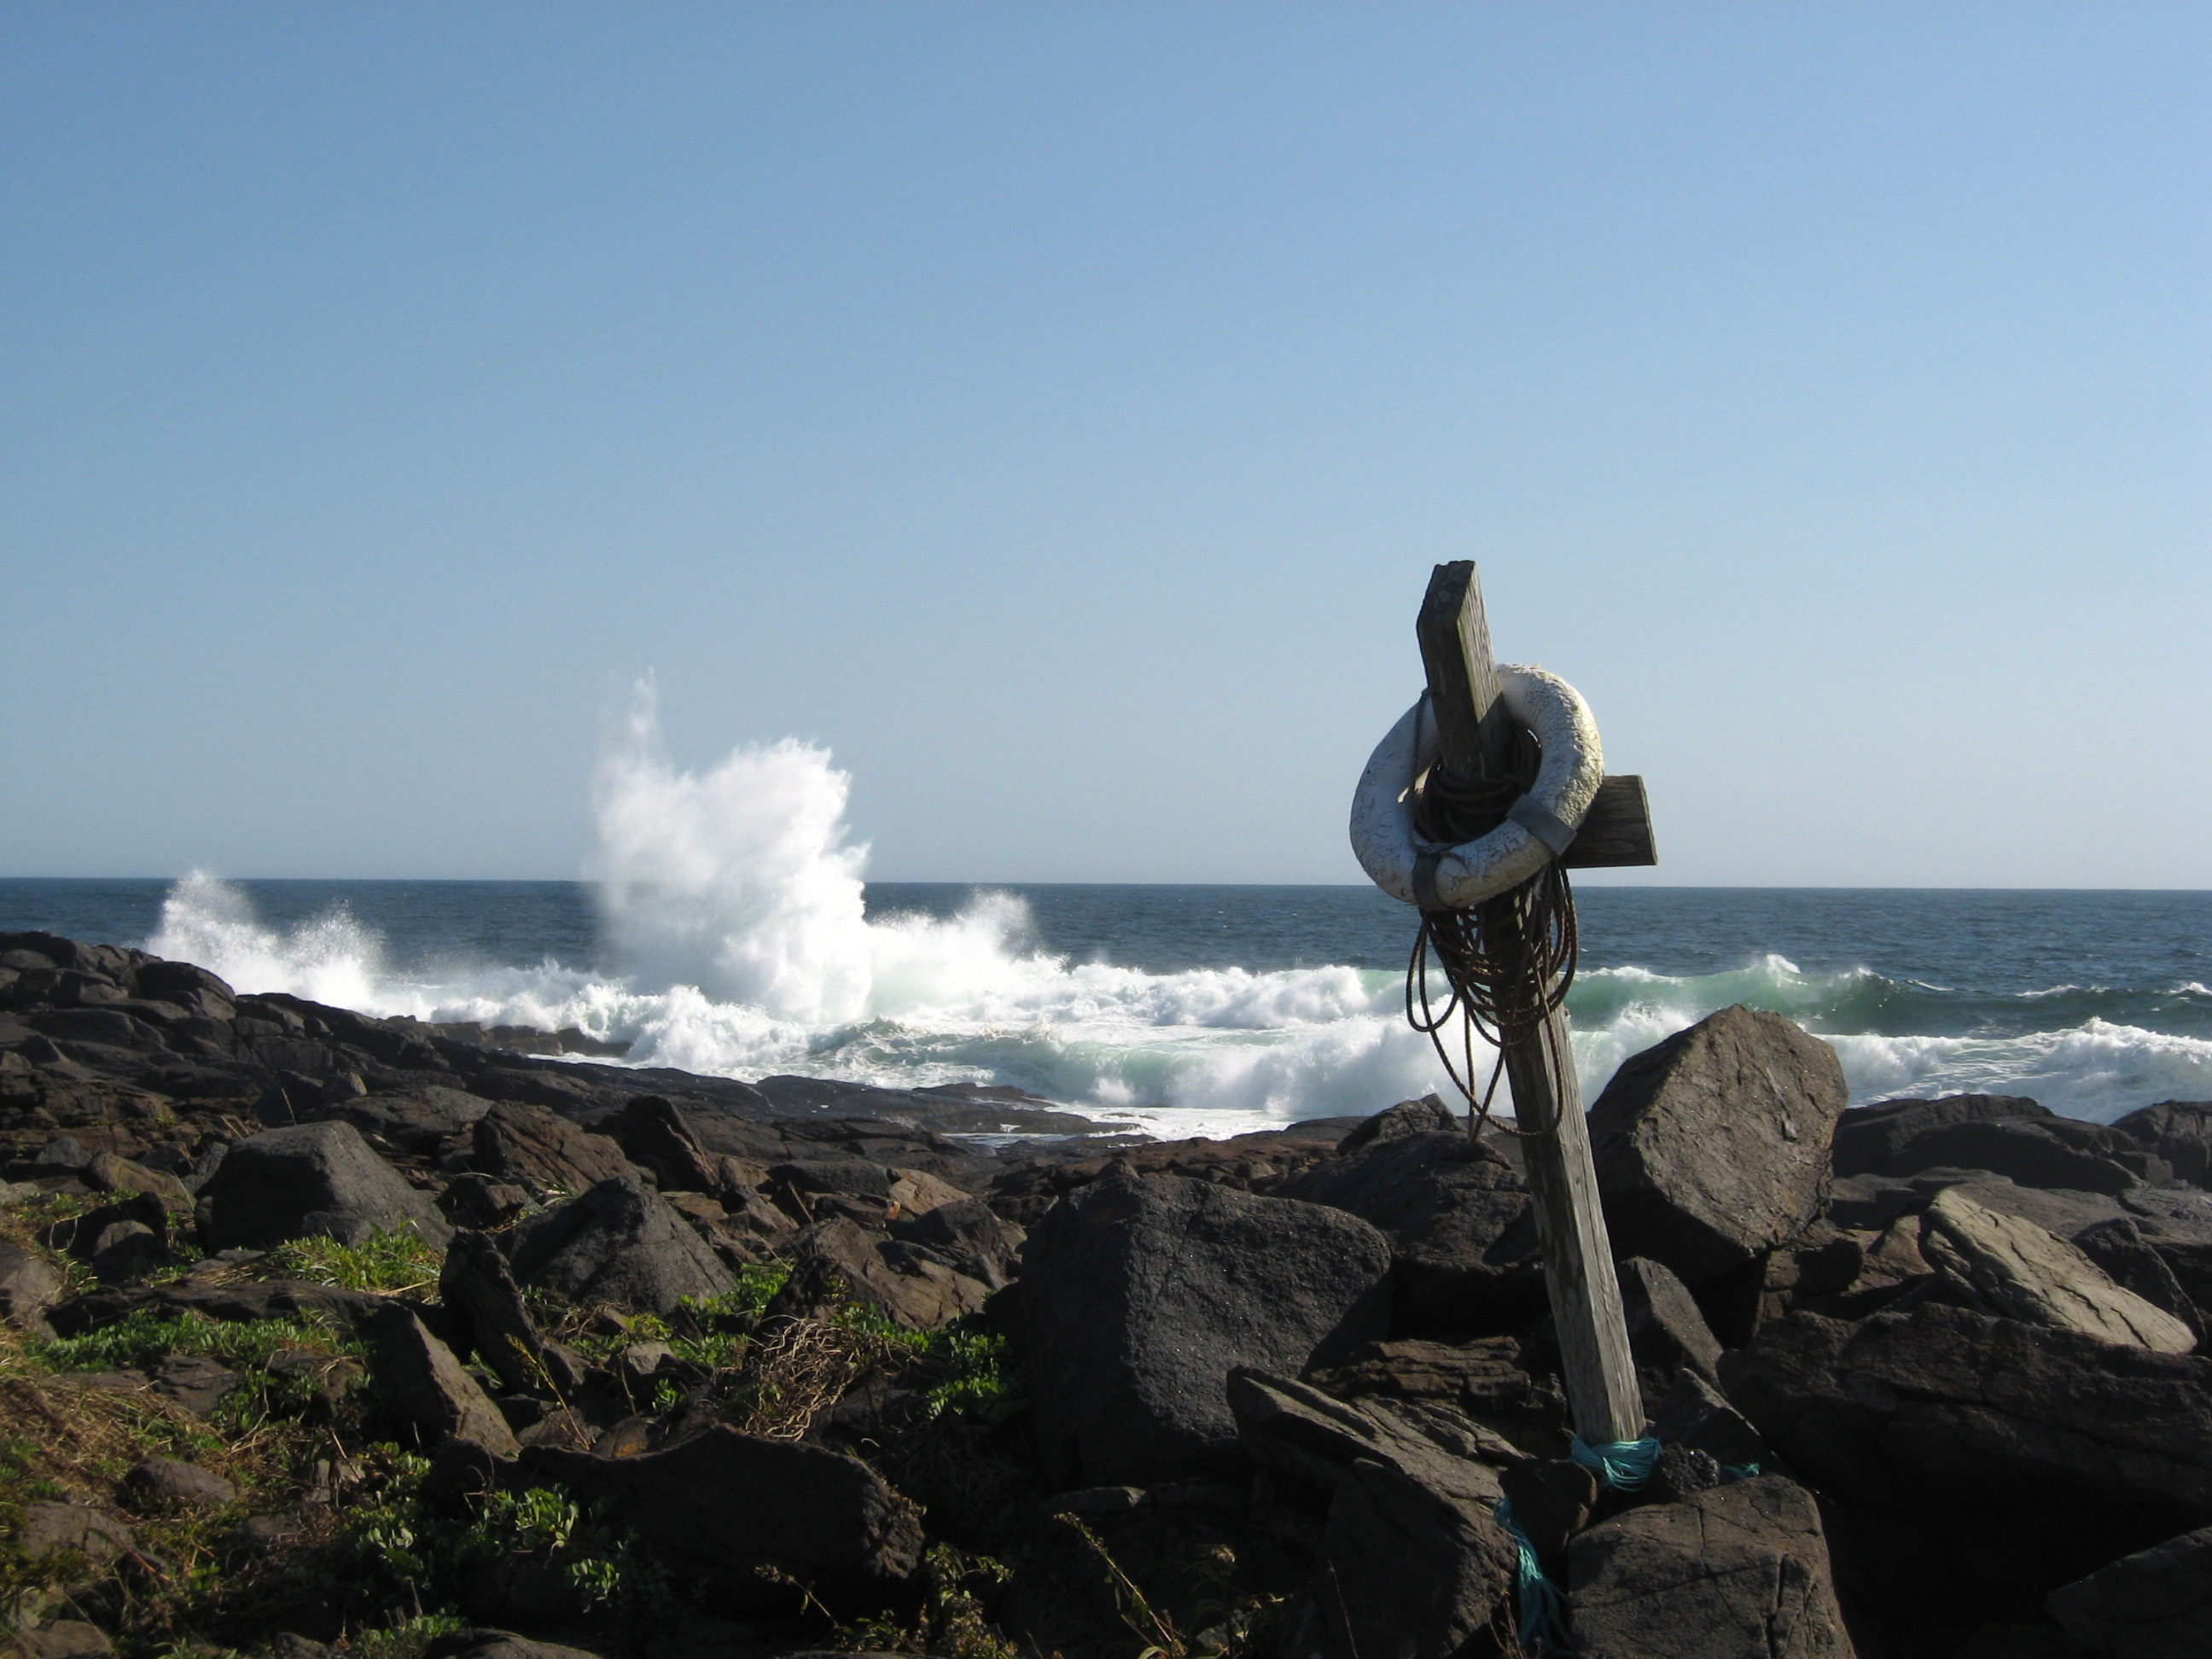 surf at Lobster Cove